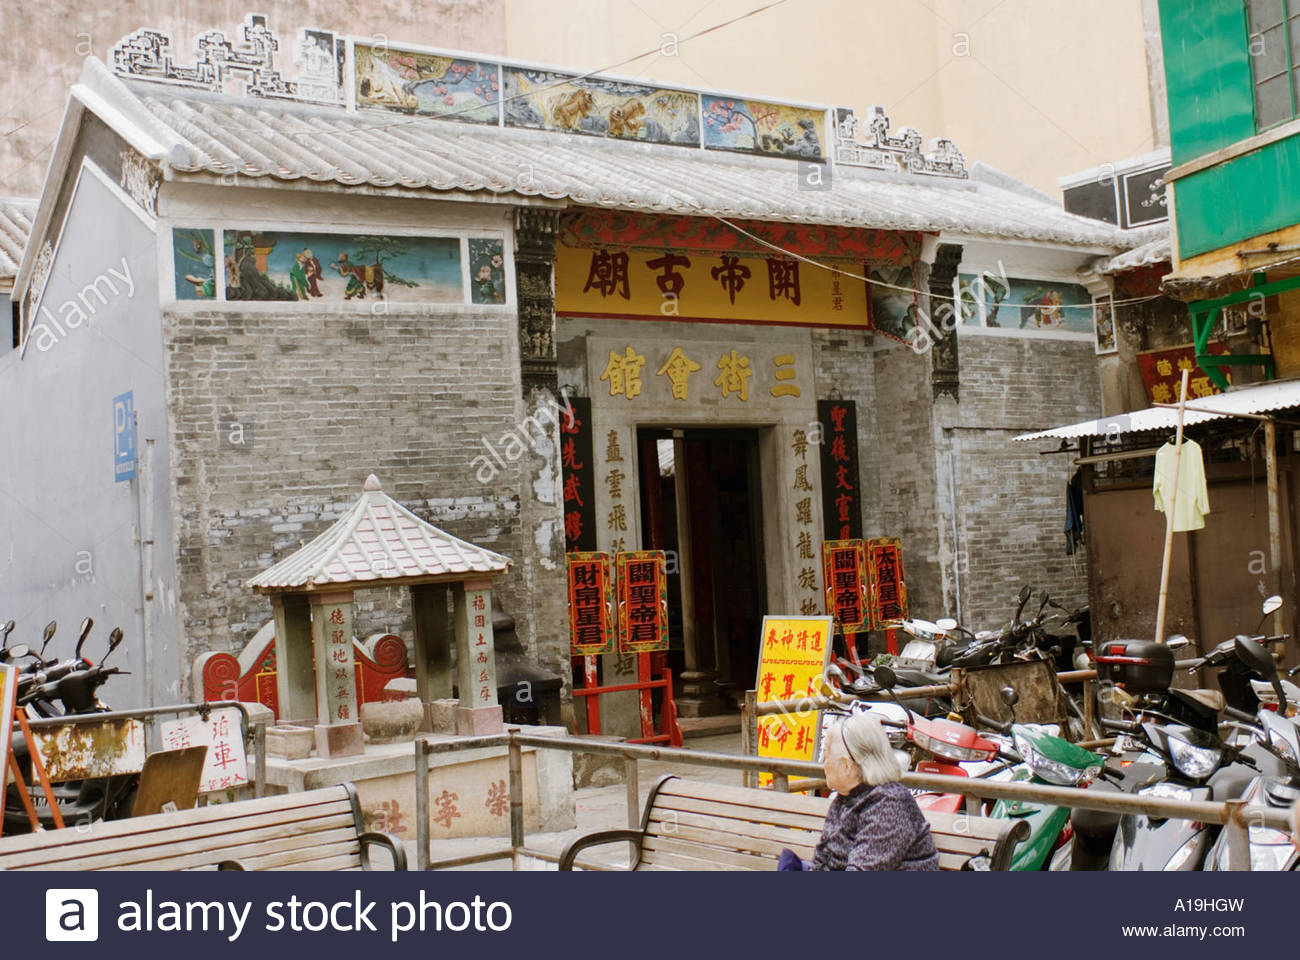 Templo de Sam Kai Vui Kun Macau, Macau Sam Kai Vui Kun Temple China Stock Photo, Royalty Free Image ...